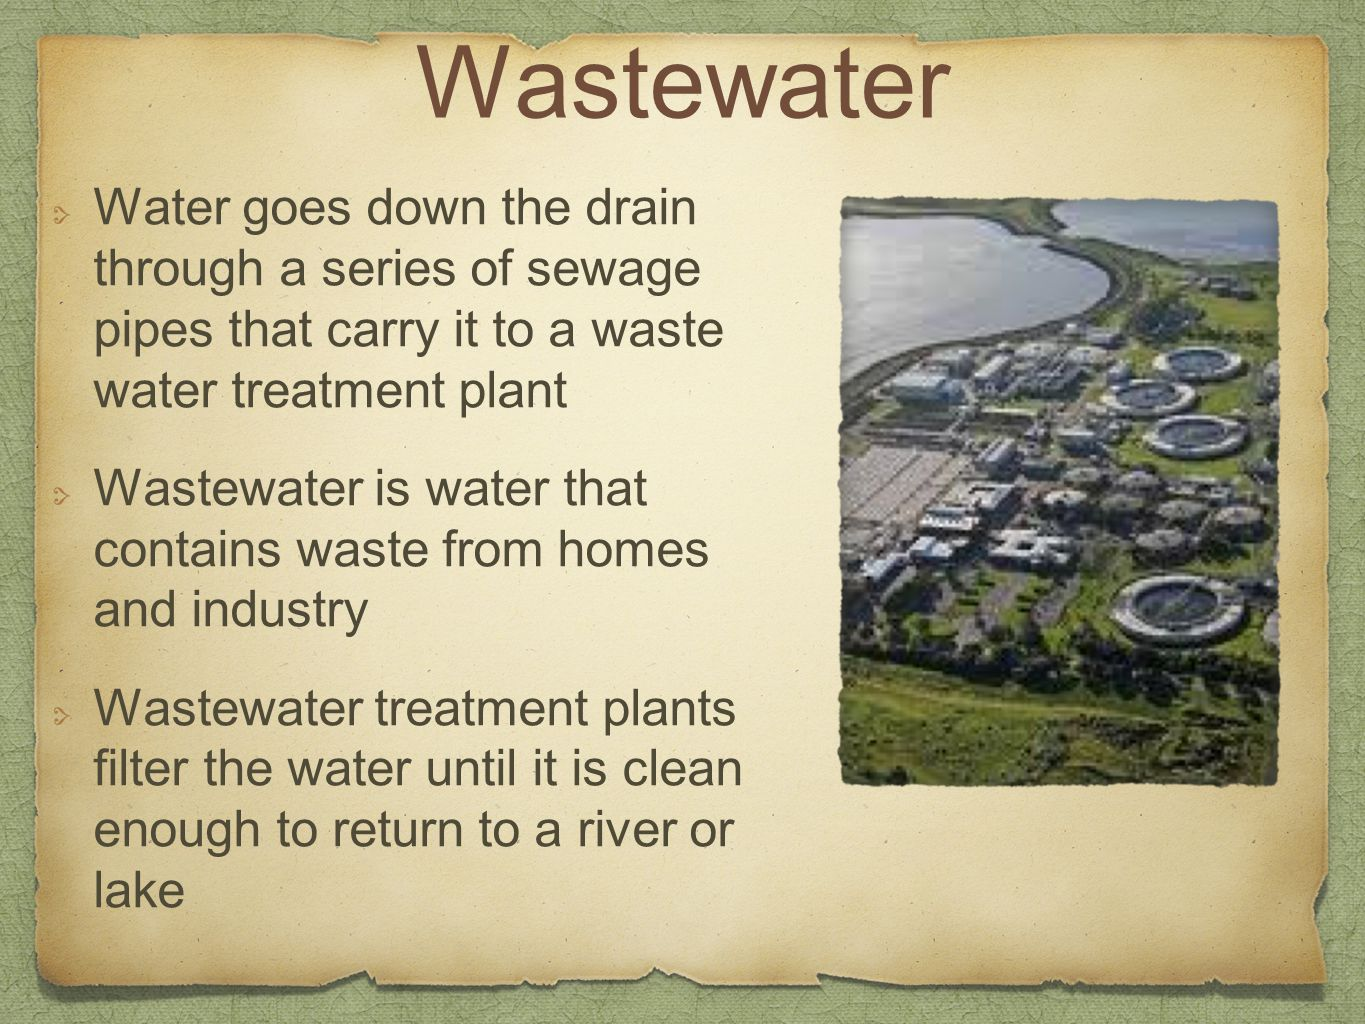 Wastewater Water goes down the drain through a series of sewage pipes that carry it to a waste water treatment plant.